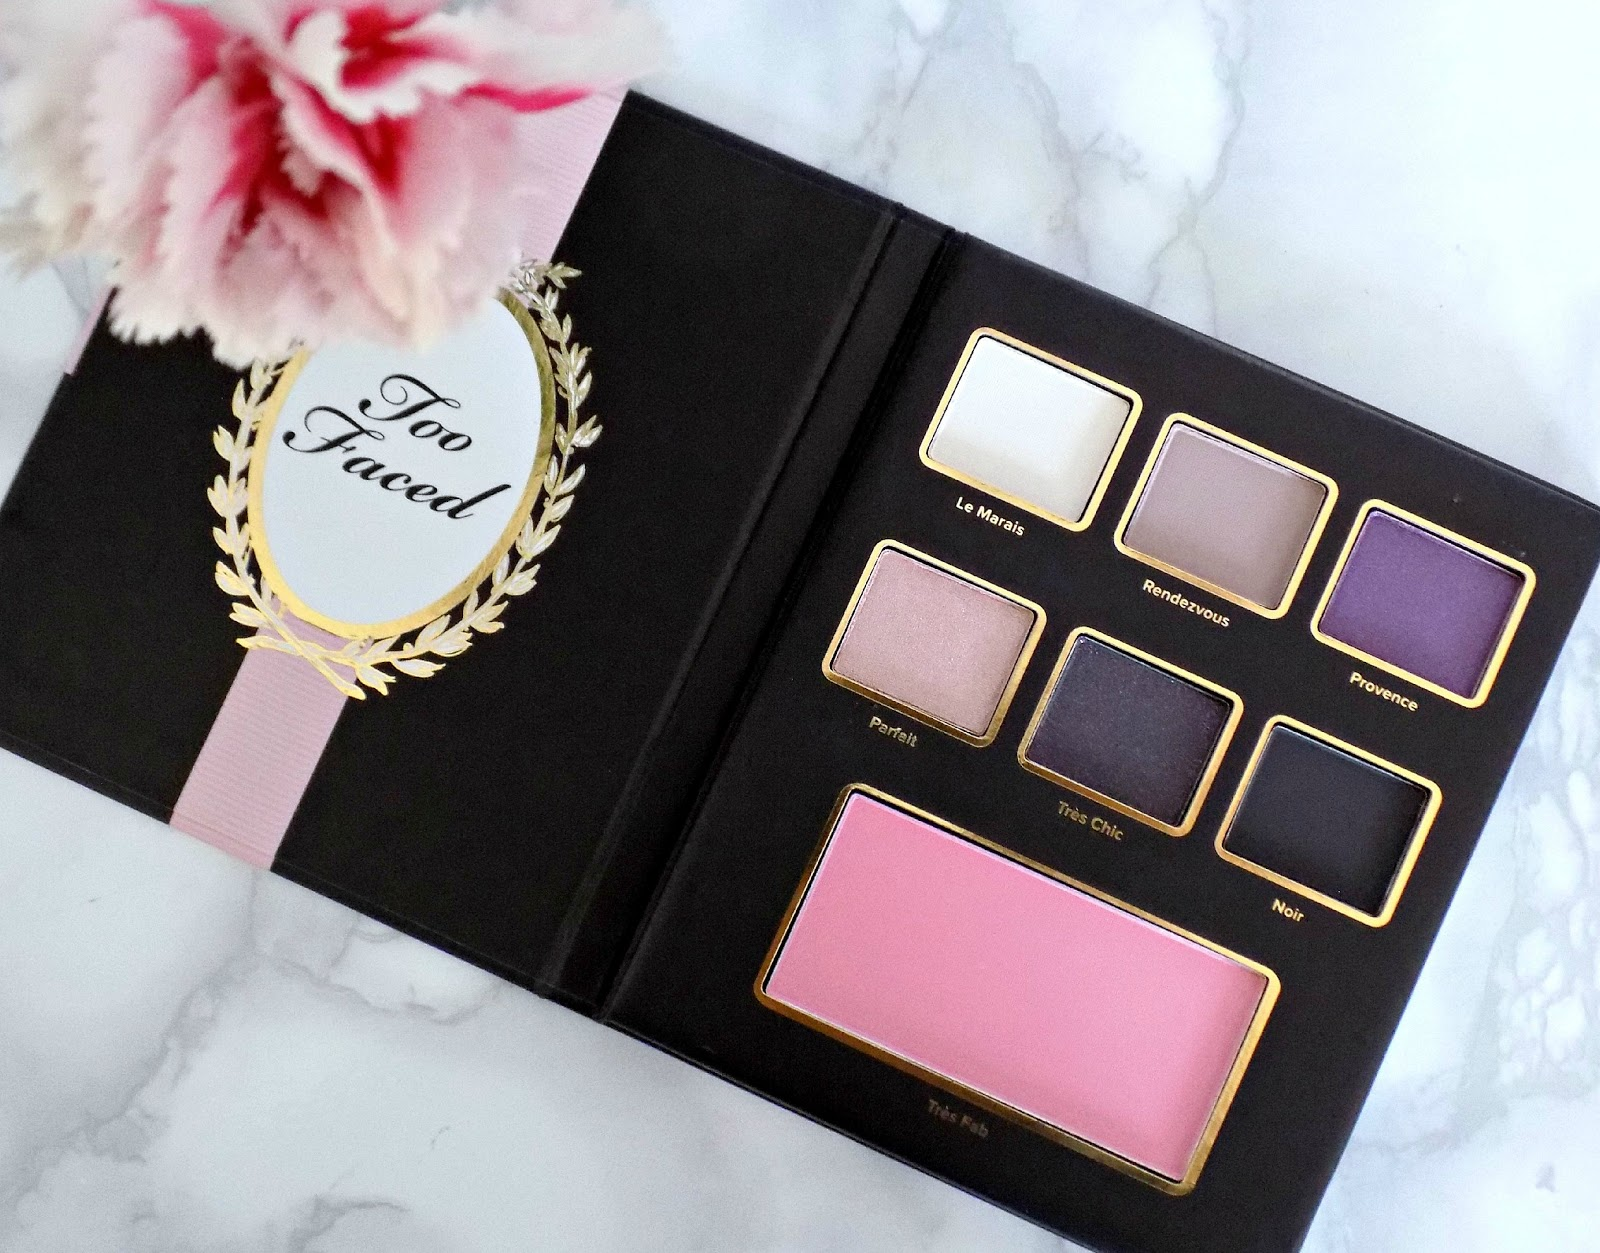 Too Faced 'Le Grand Chateau' Holiday set